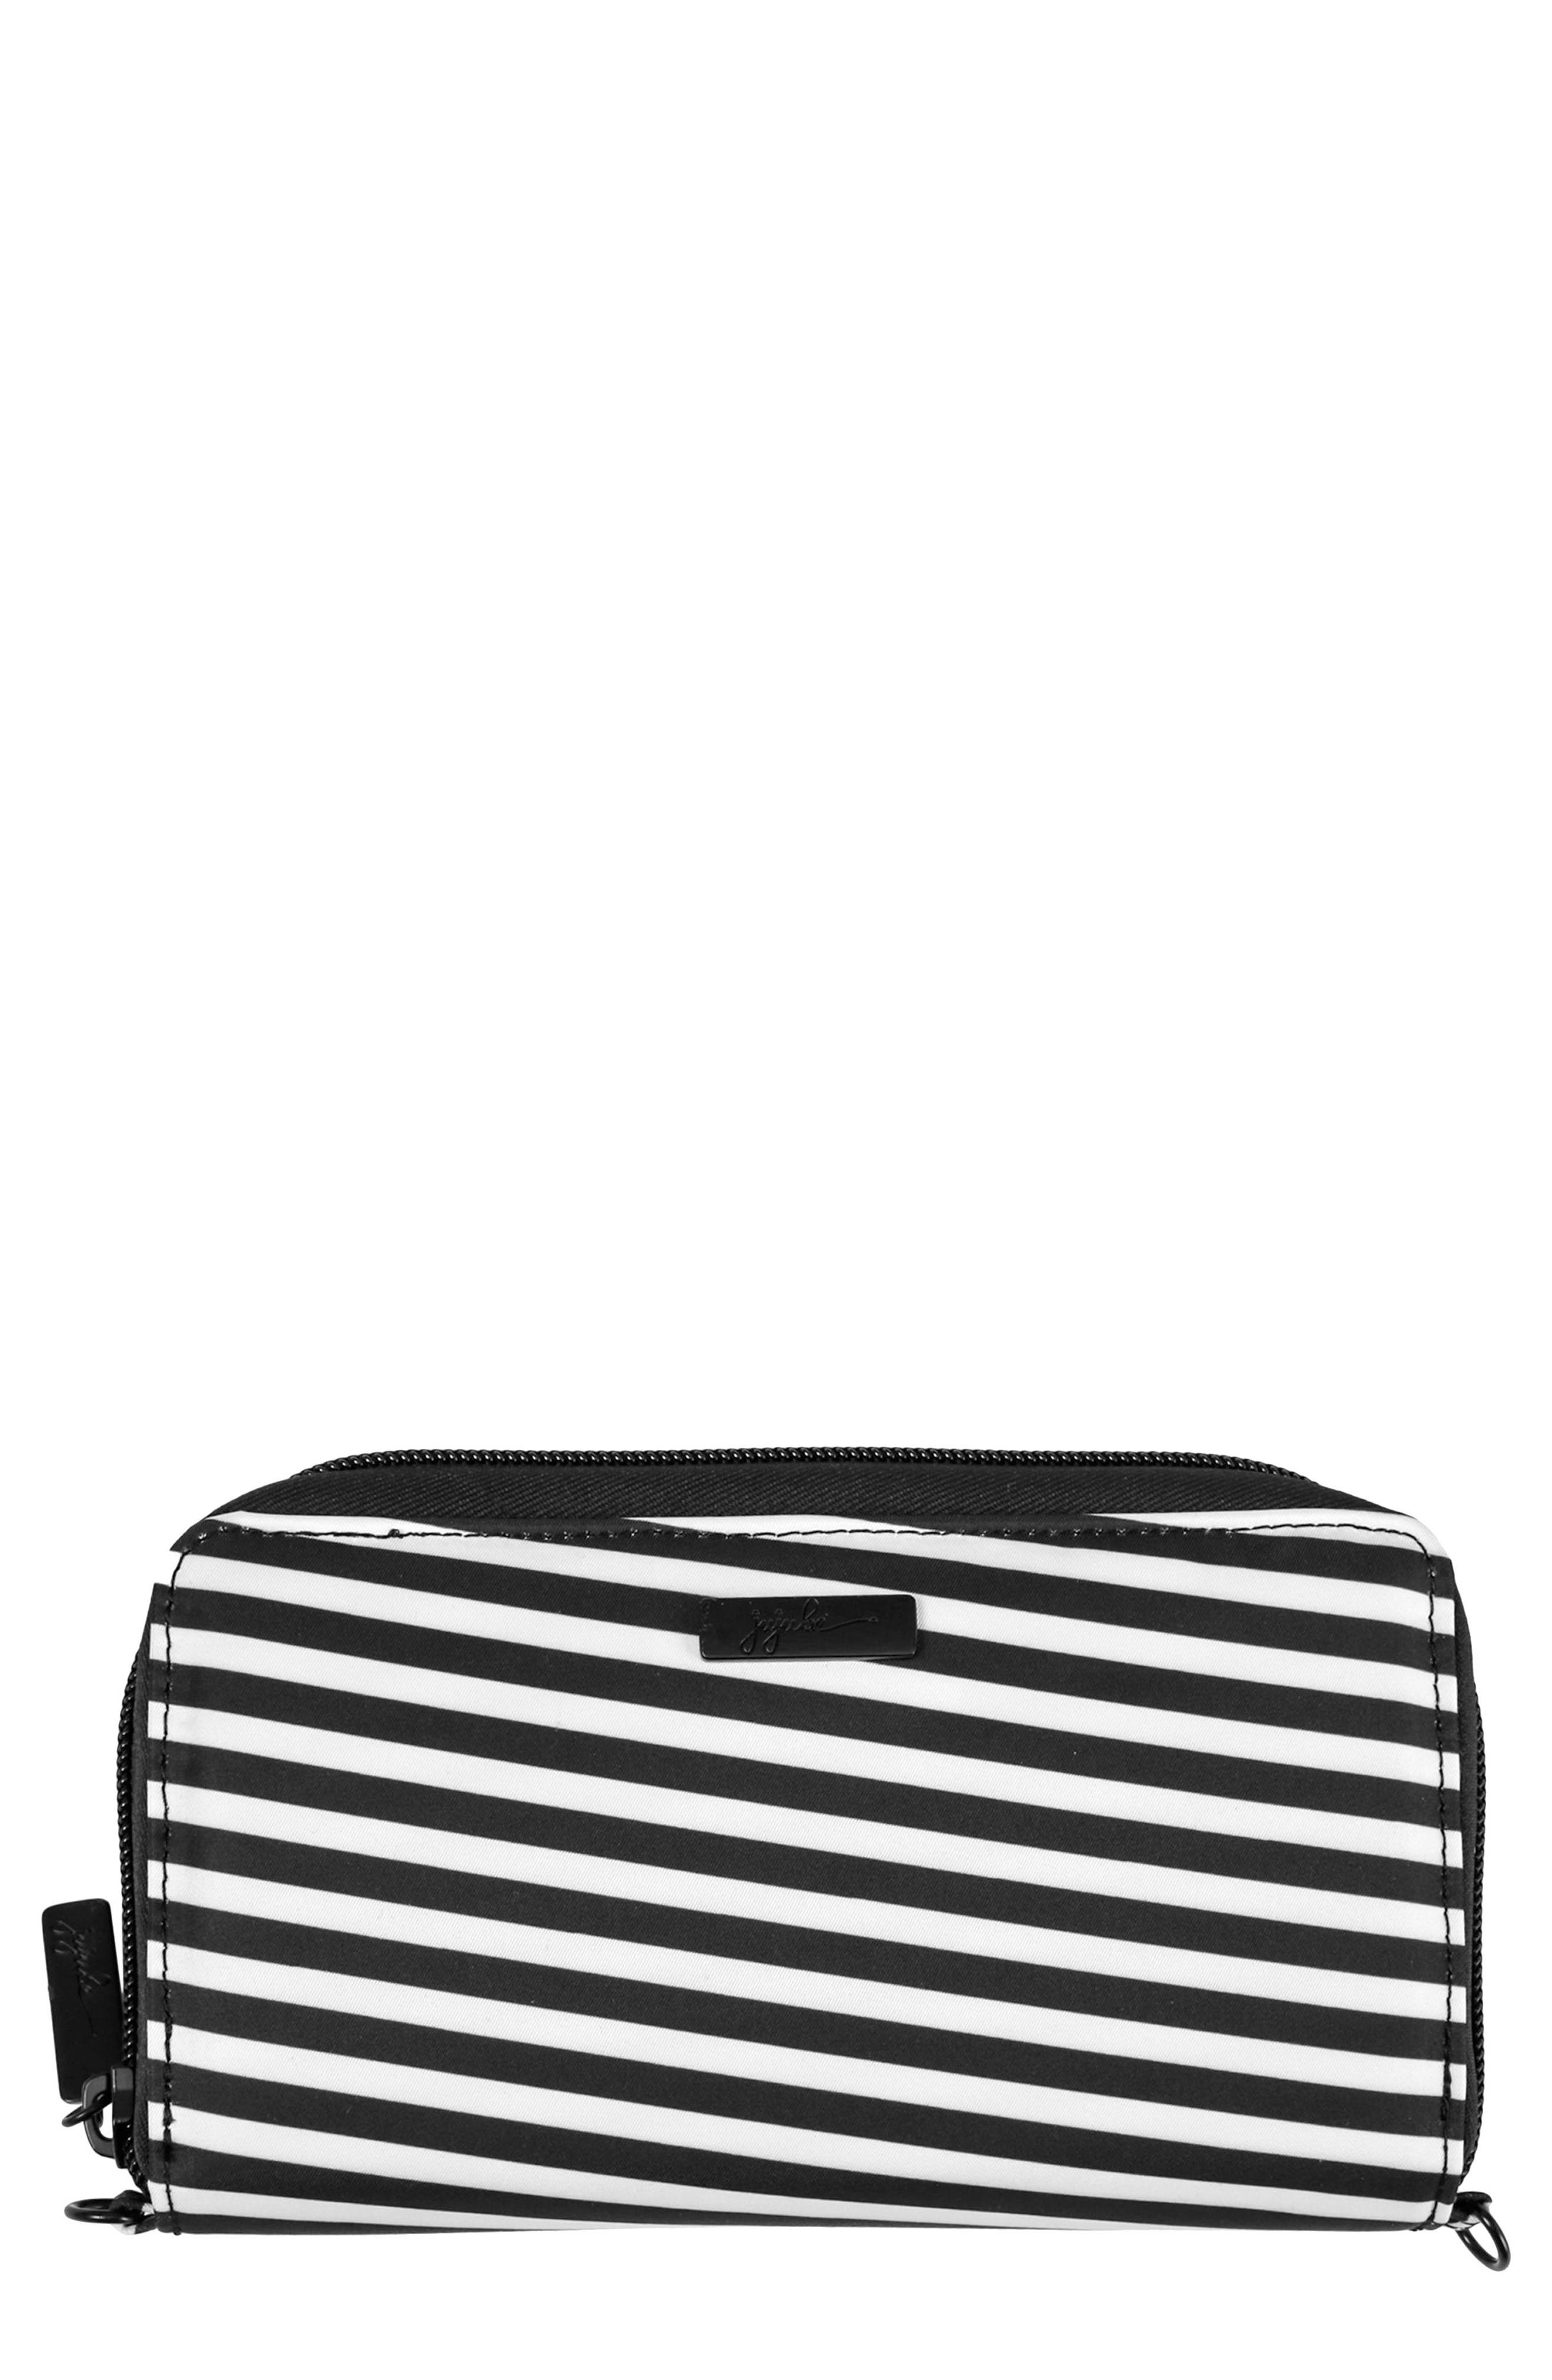 Onyx Be Spendy Clutch Wallet,                         Main,                         color, BLACK MAGIC